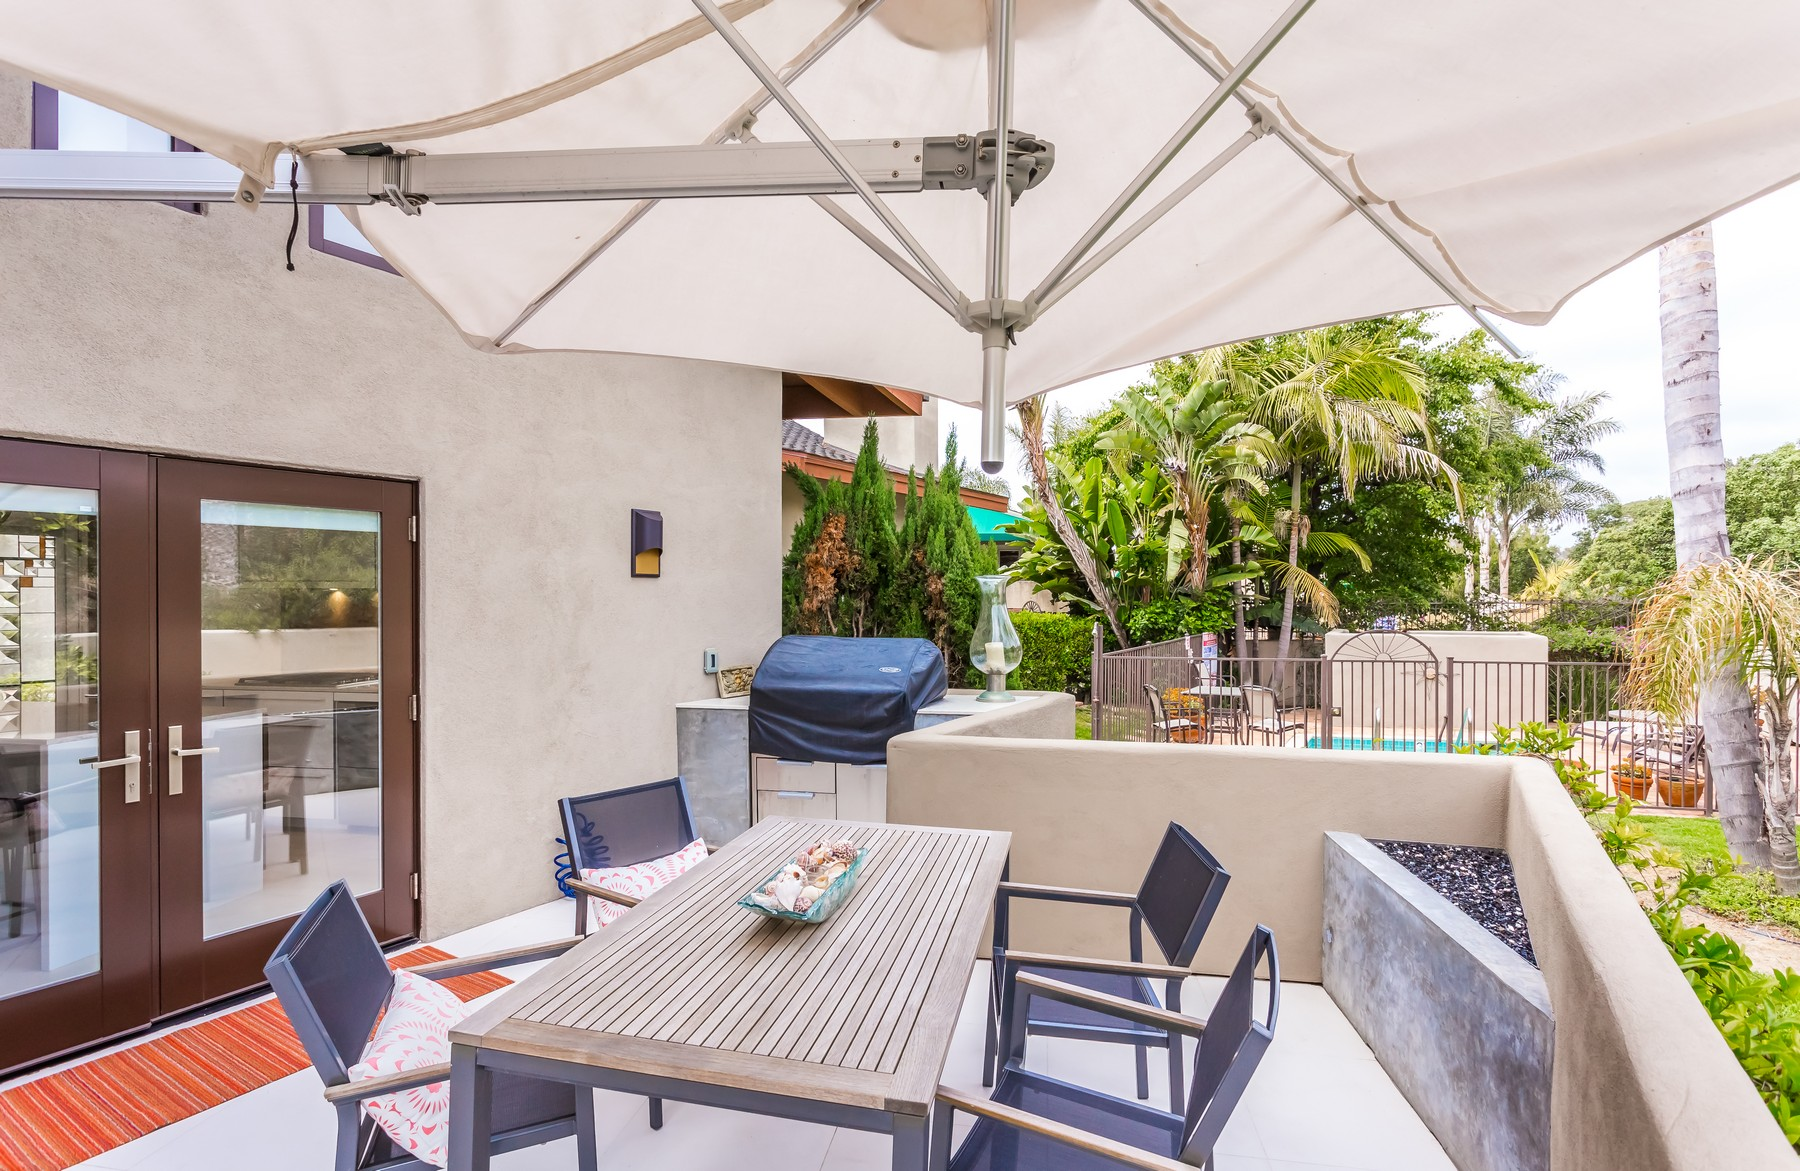 Additional photo for property listing at 1727-1729 Coast Boulevard  Del Mar, California 92014 United States